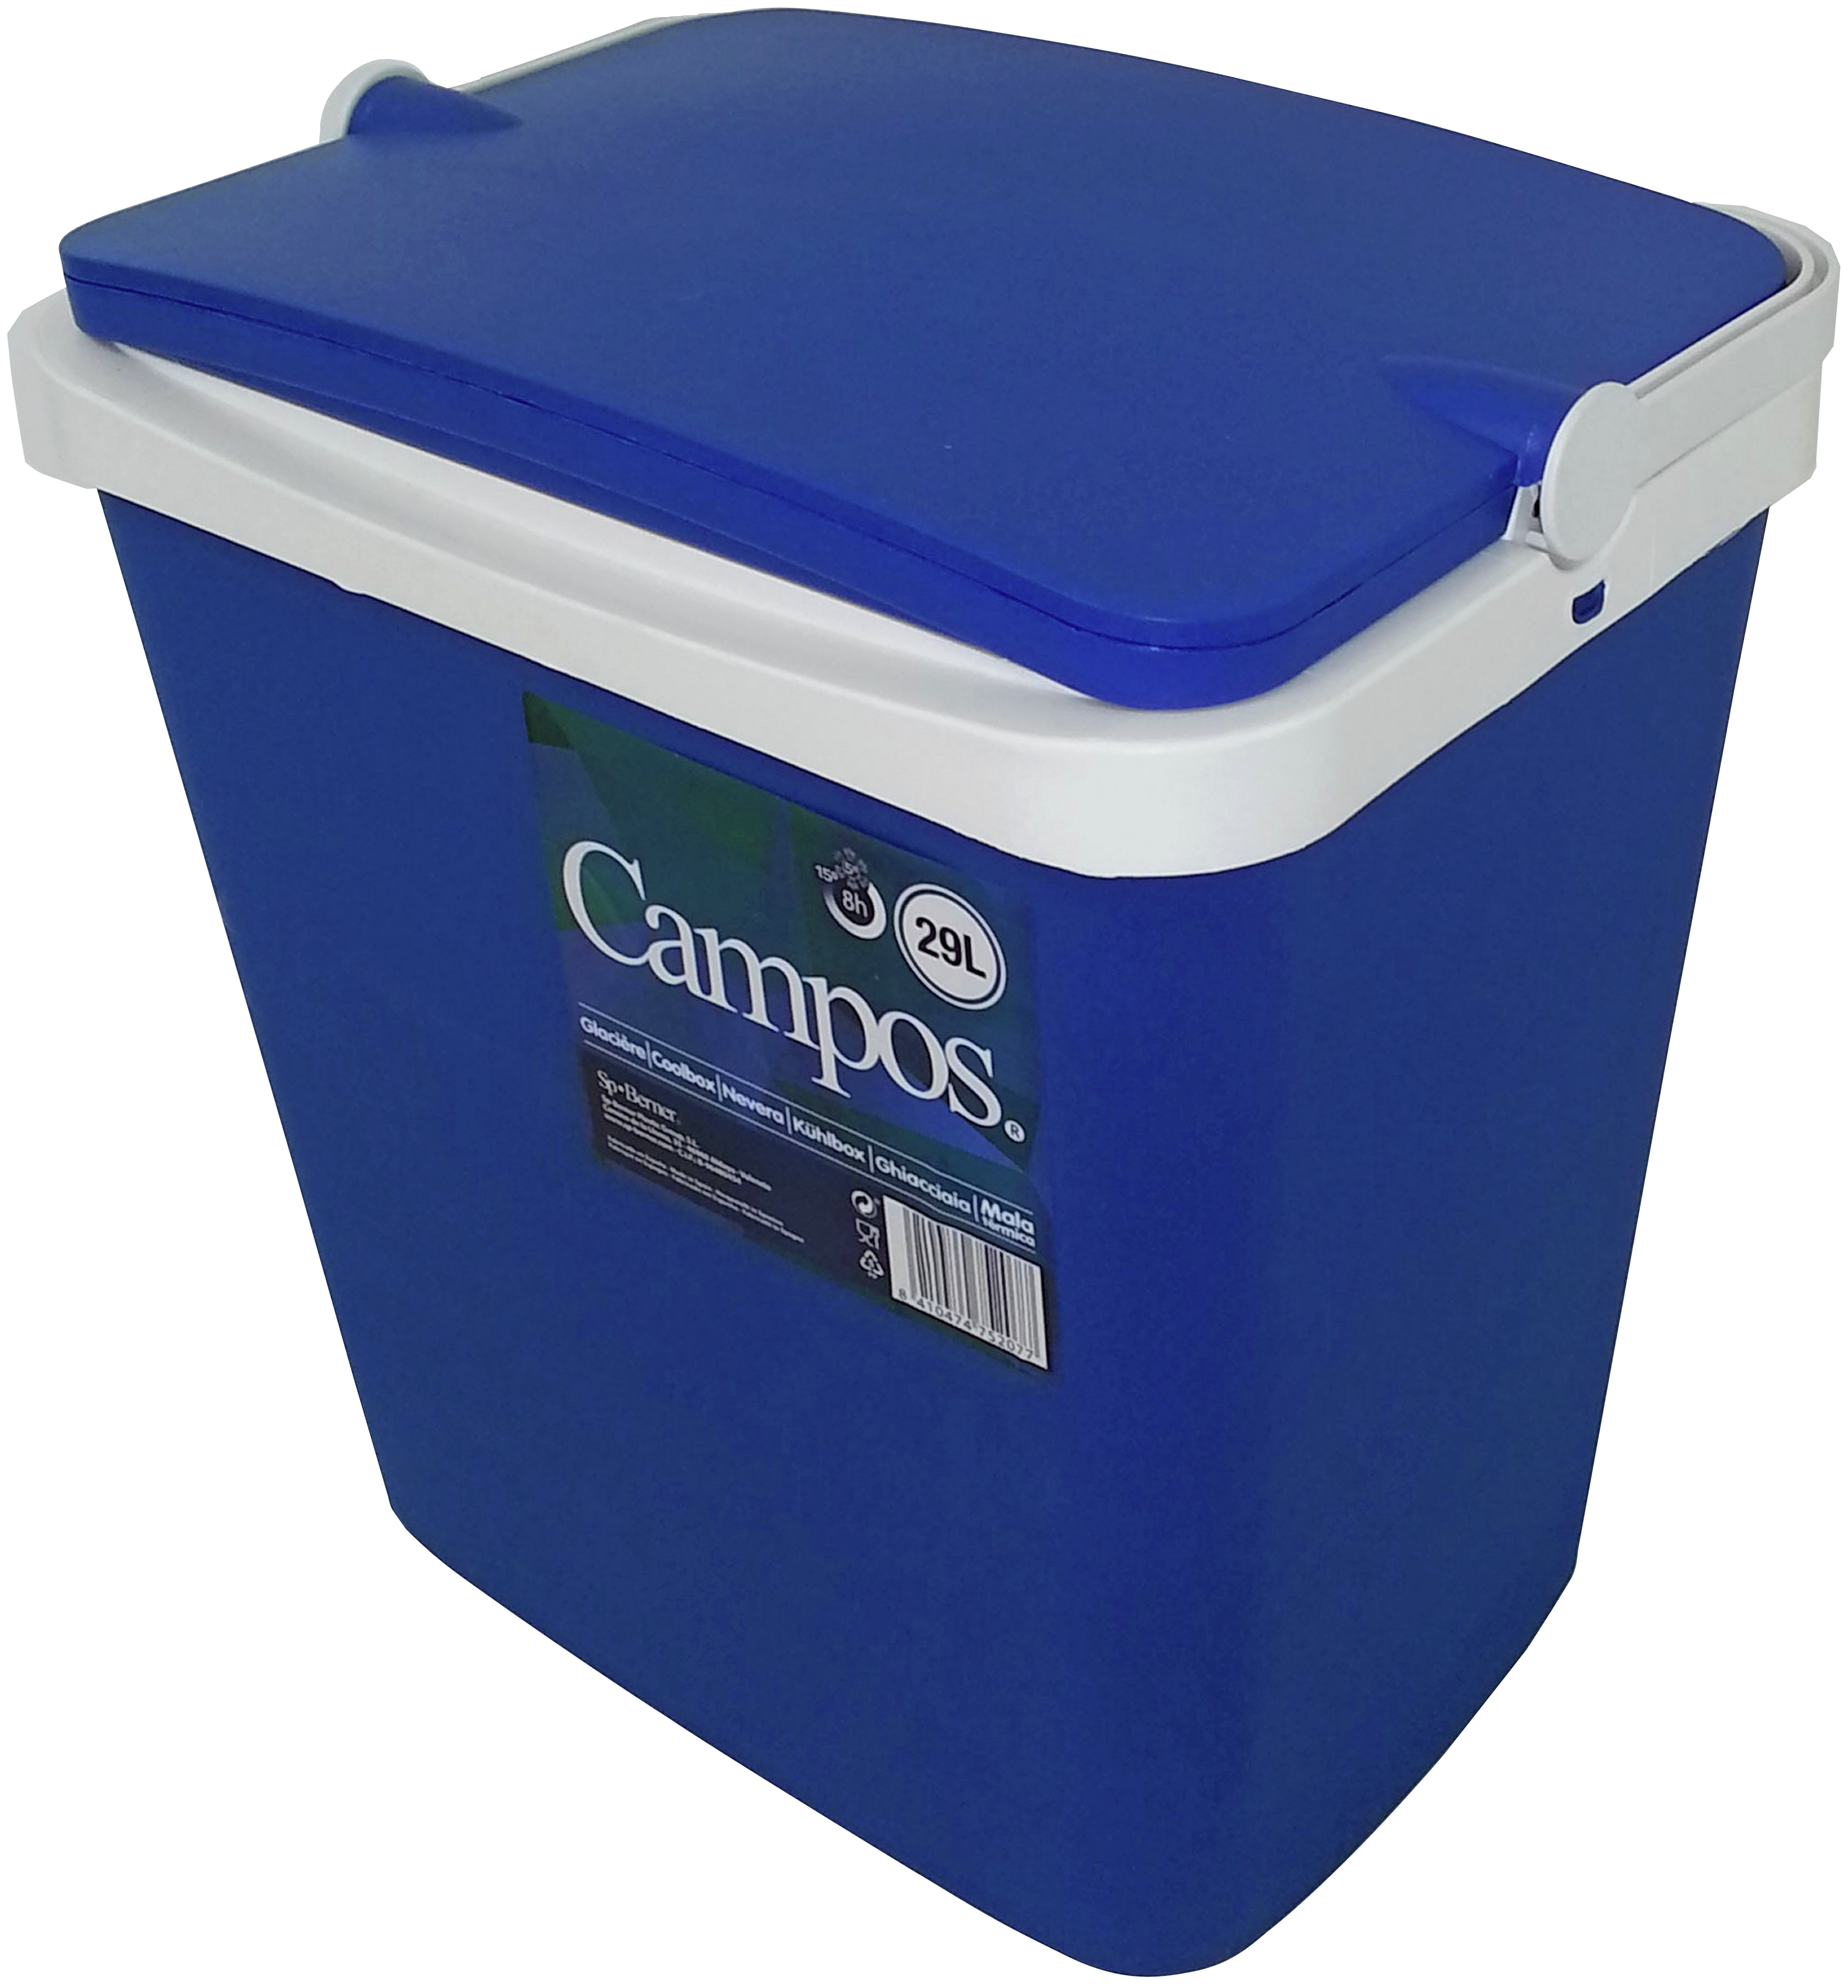 Image of Cool Box - 29 Litre